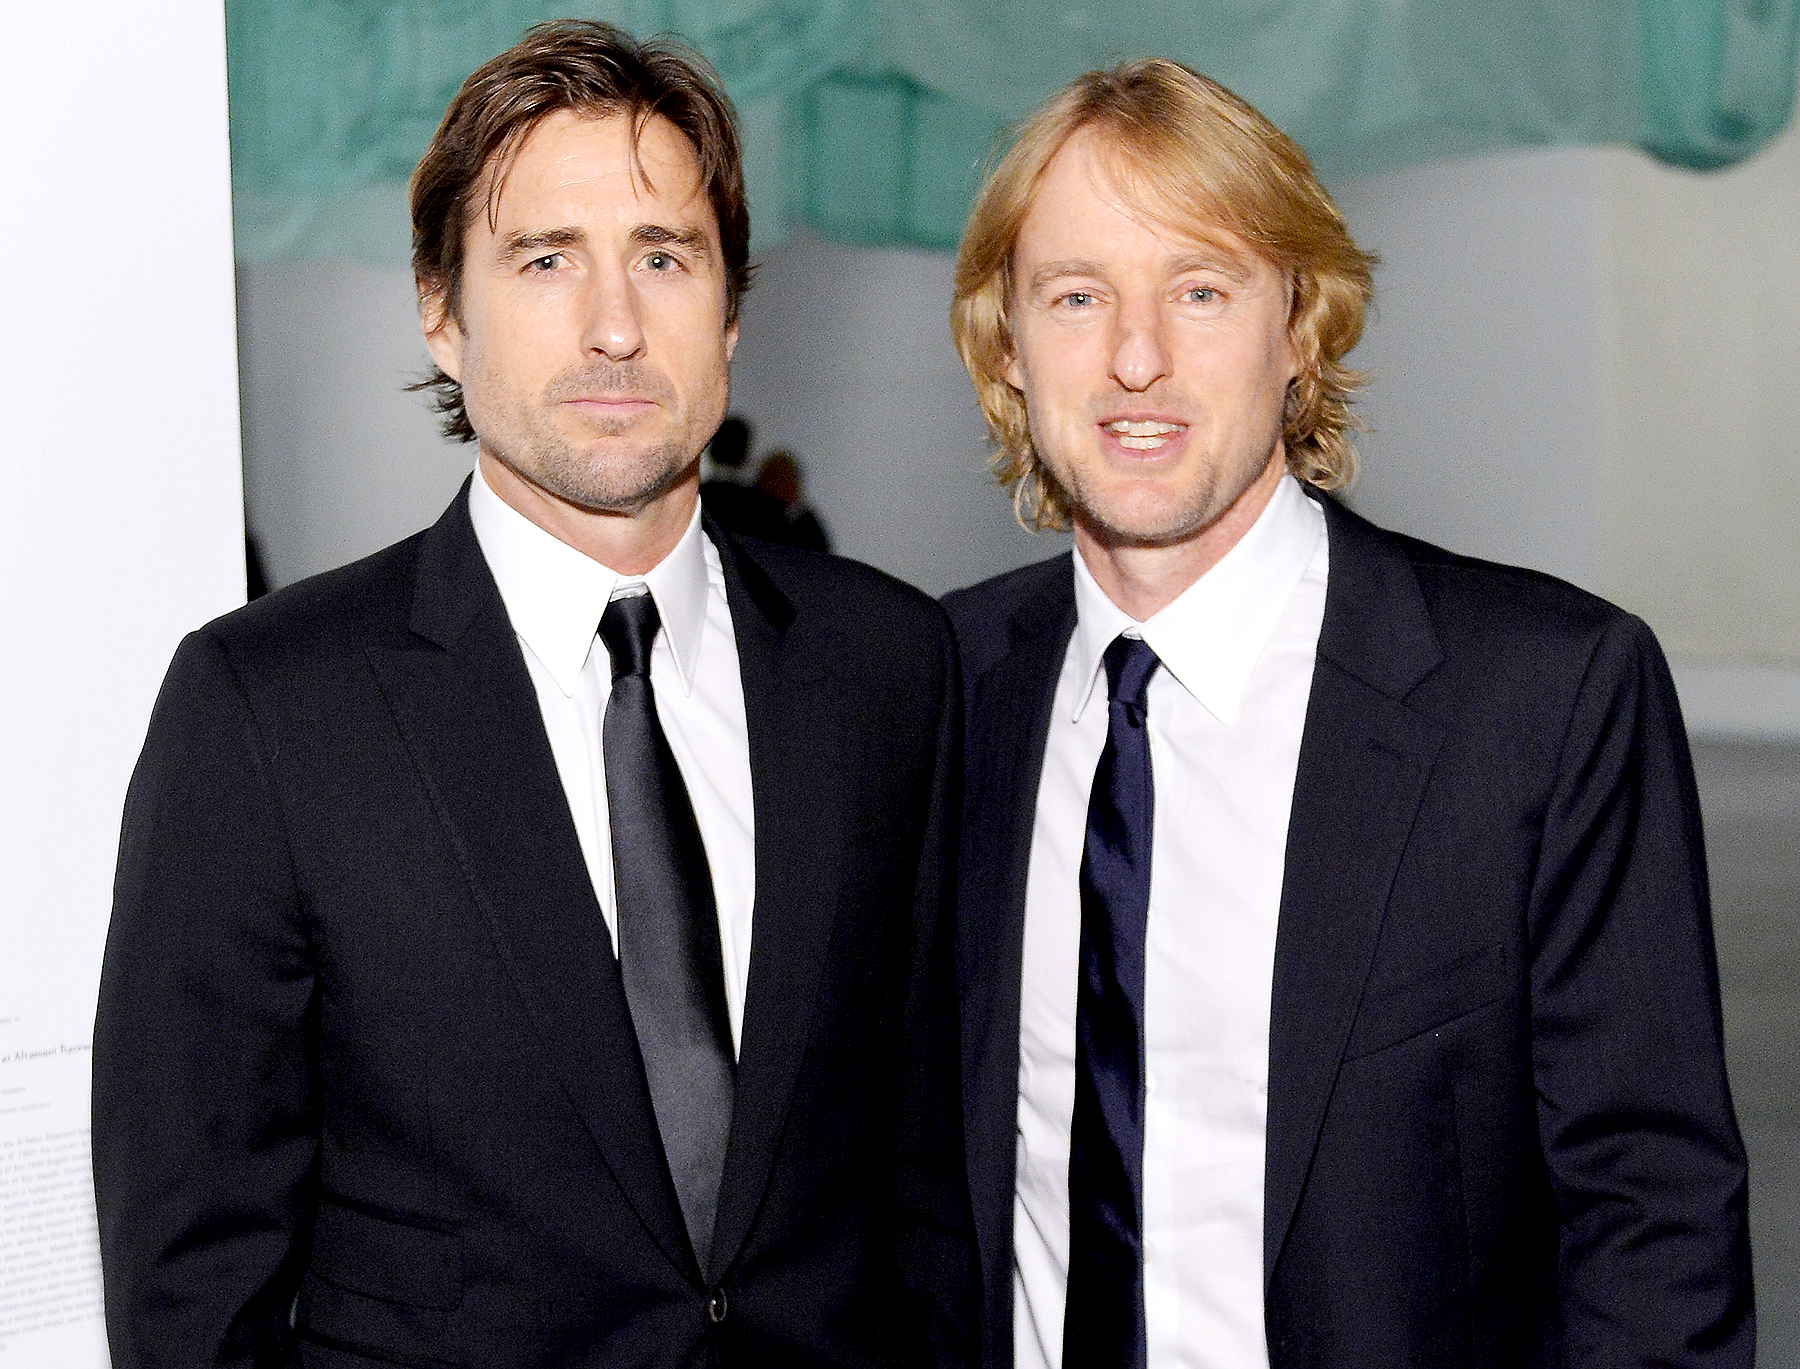 Luke Wilson and Owen Wilson attend the MOCA Gala 2016 at The Geffen Contemporary at MOCA on May 14, 2016 in Los Angeles, California.